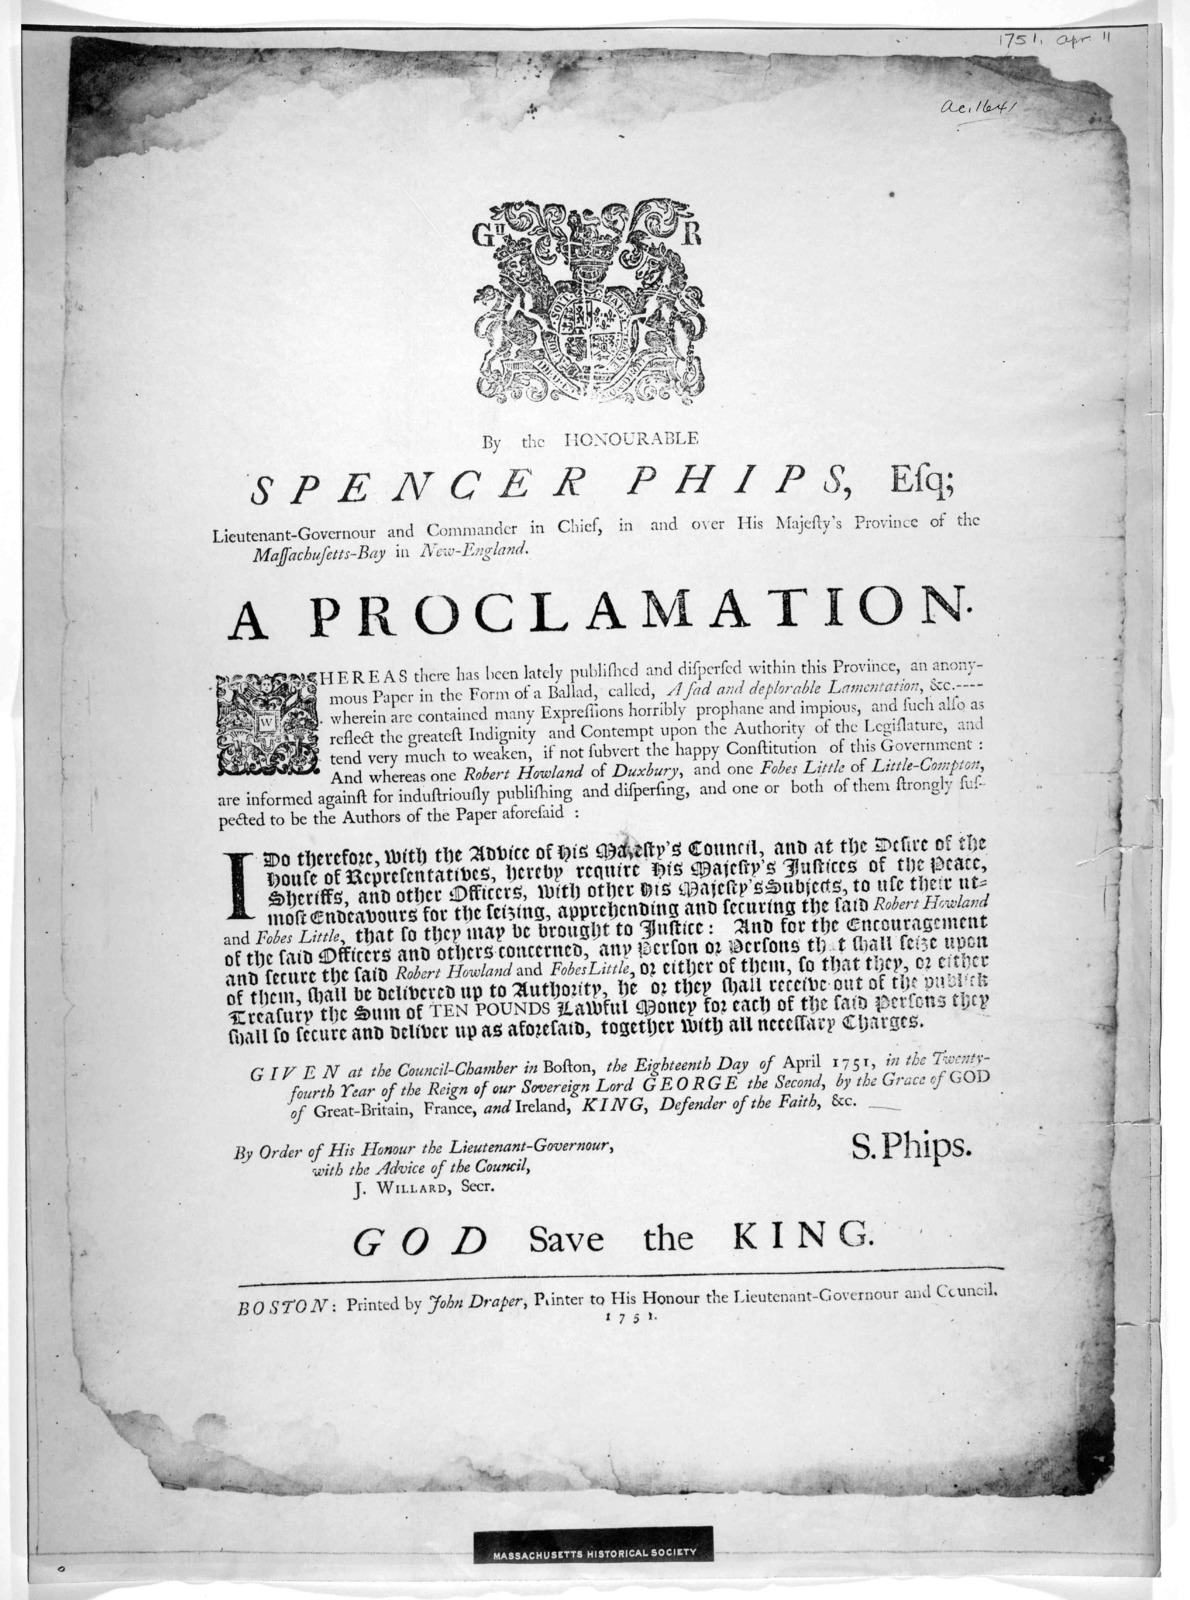 By the Honourable Spencer Phips, Esq; Lieutenant-Governour and Commander in chief, in and over His Majesty's Province of the Massachusetts-Bay in New-England. A proclamation [Offering a reward for the apprehension of Robert Howland and Fobes Lit